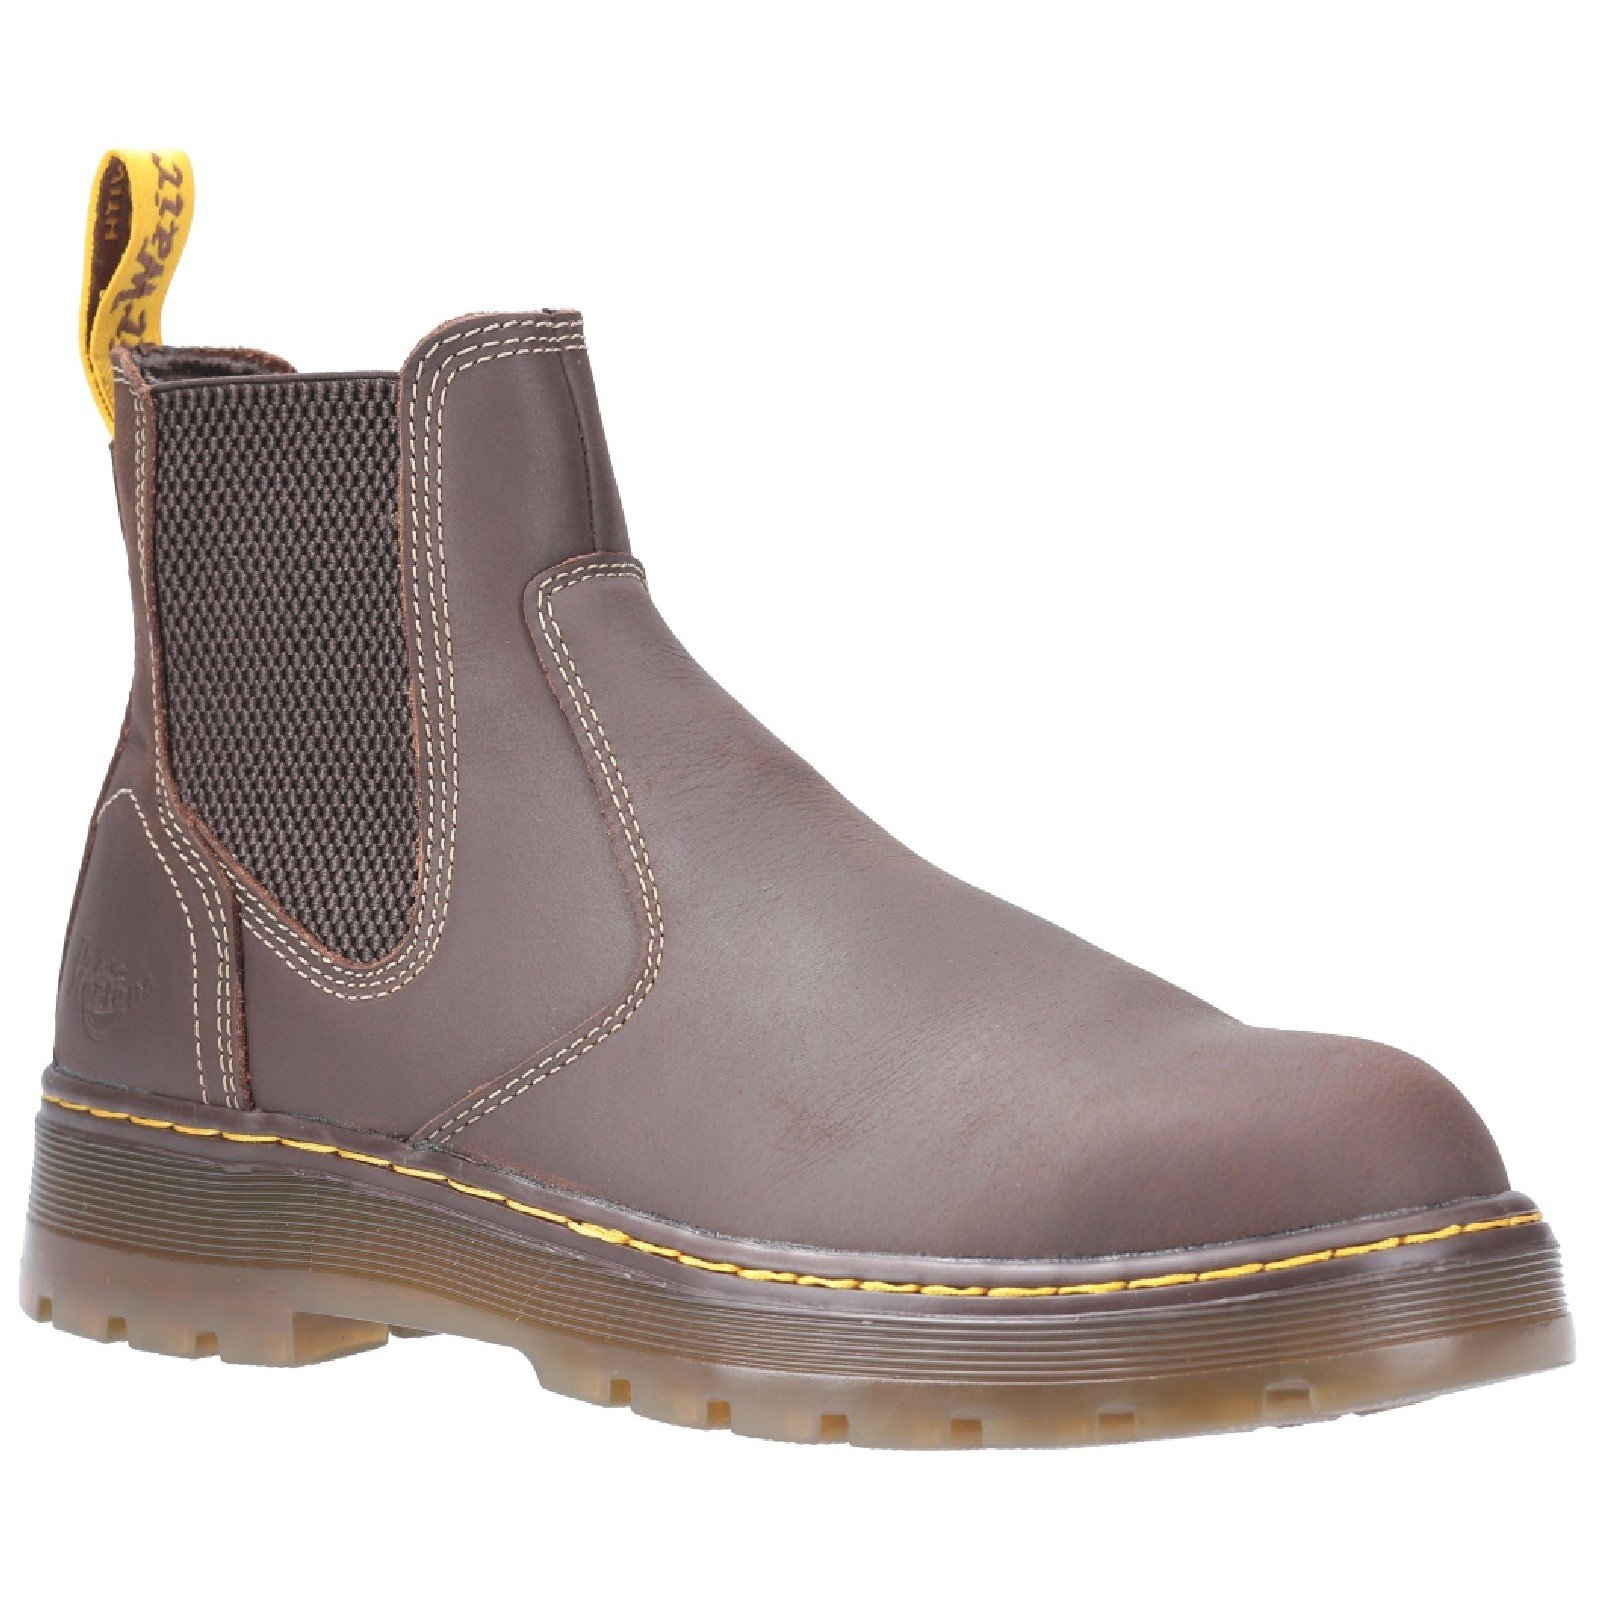 Dr Martens Unisex Eaves SB Elasticated Safety Boot Brown 29519 - Brown 7